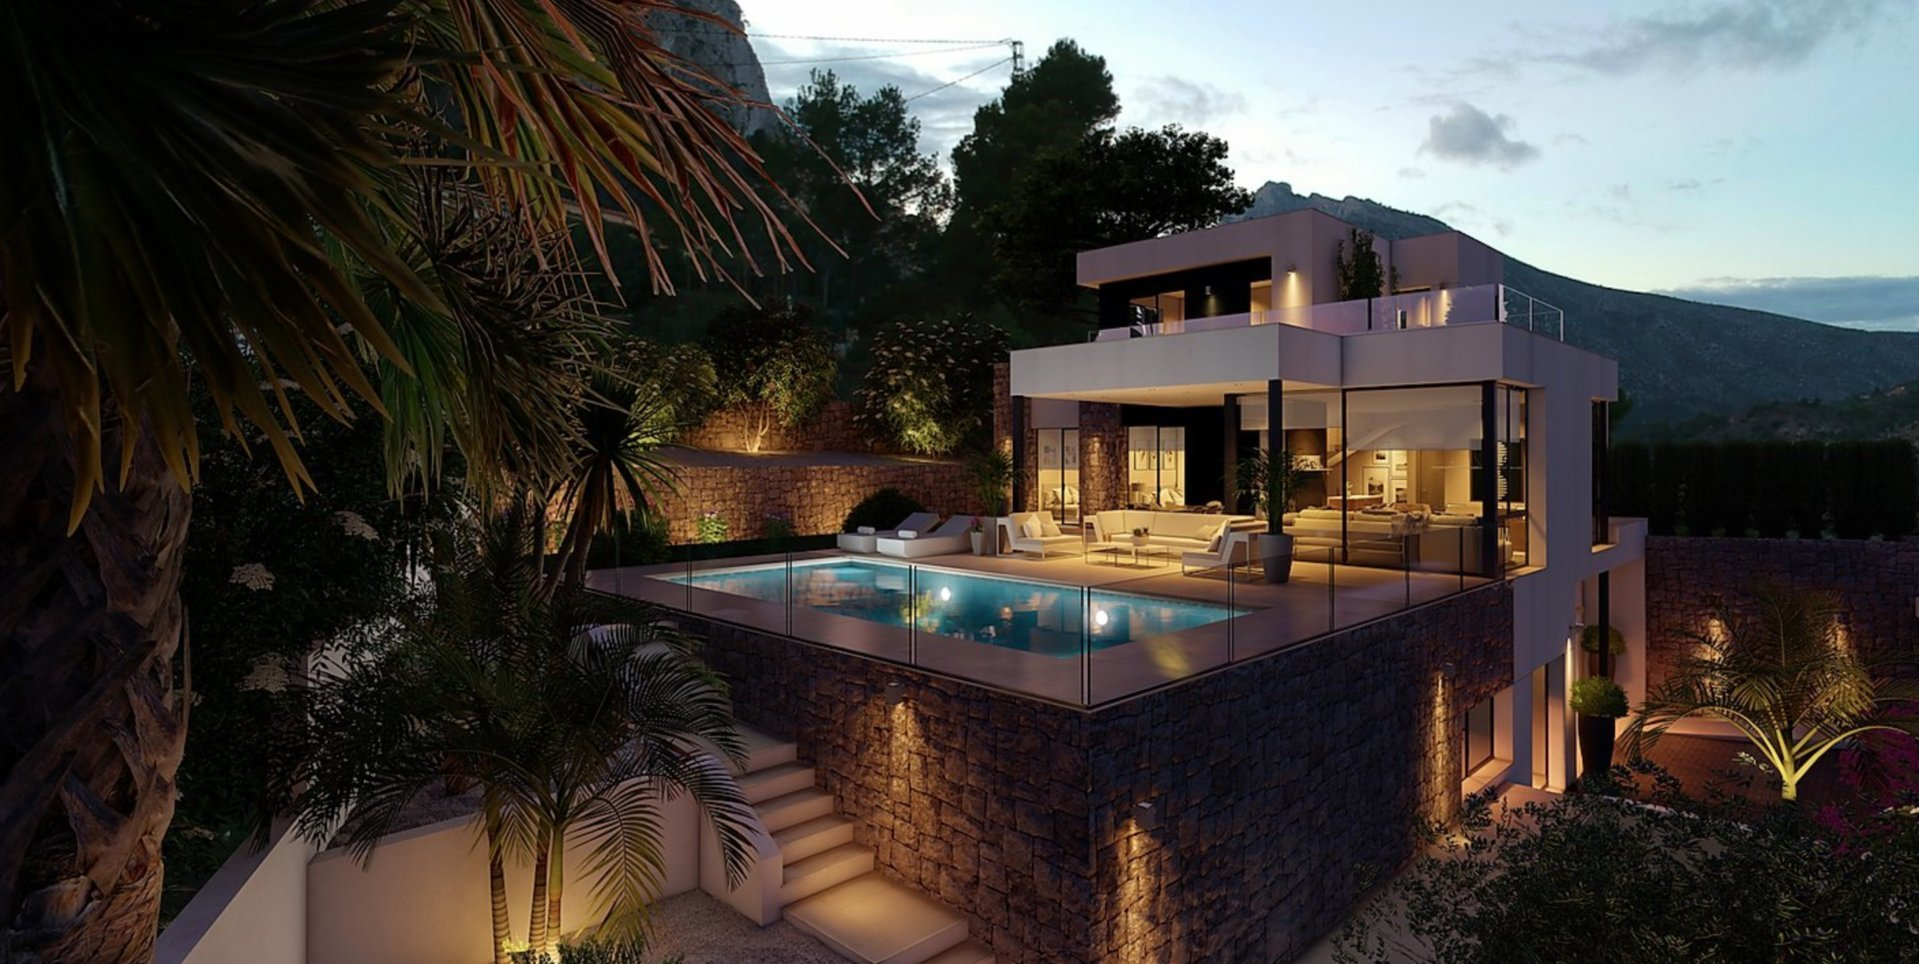 Exclusive design project close to the city centre of Calpe